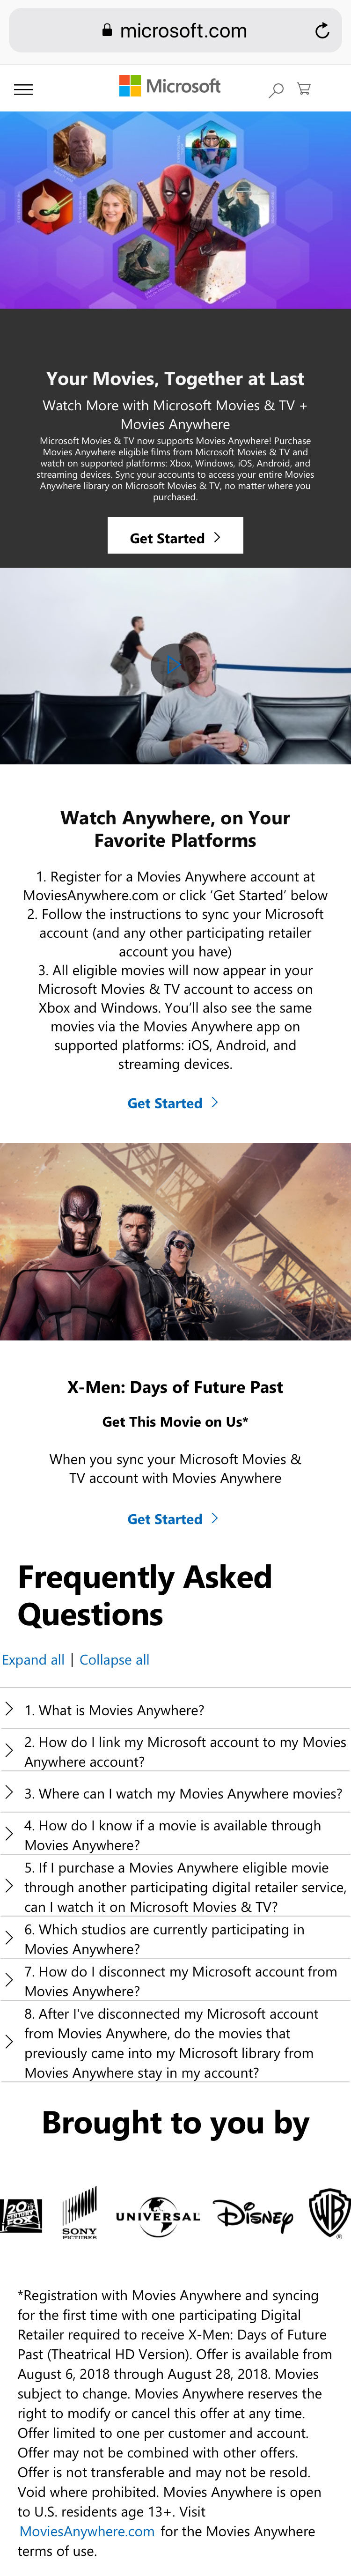 microsoft-movies-anywhere-page